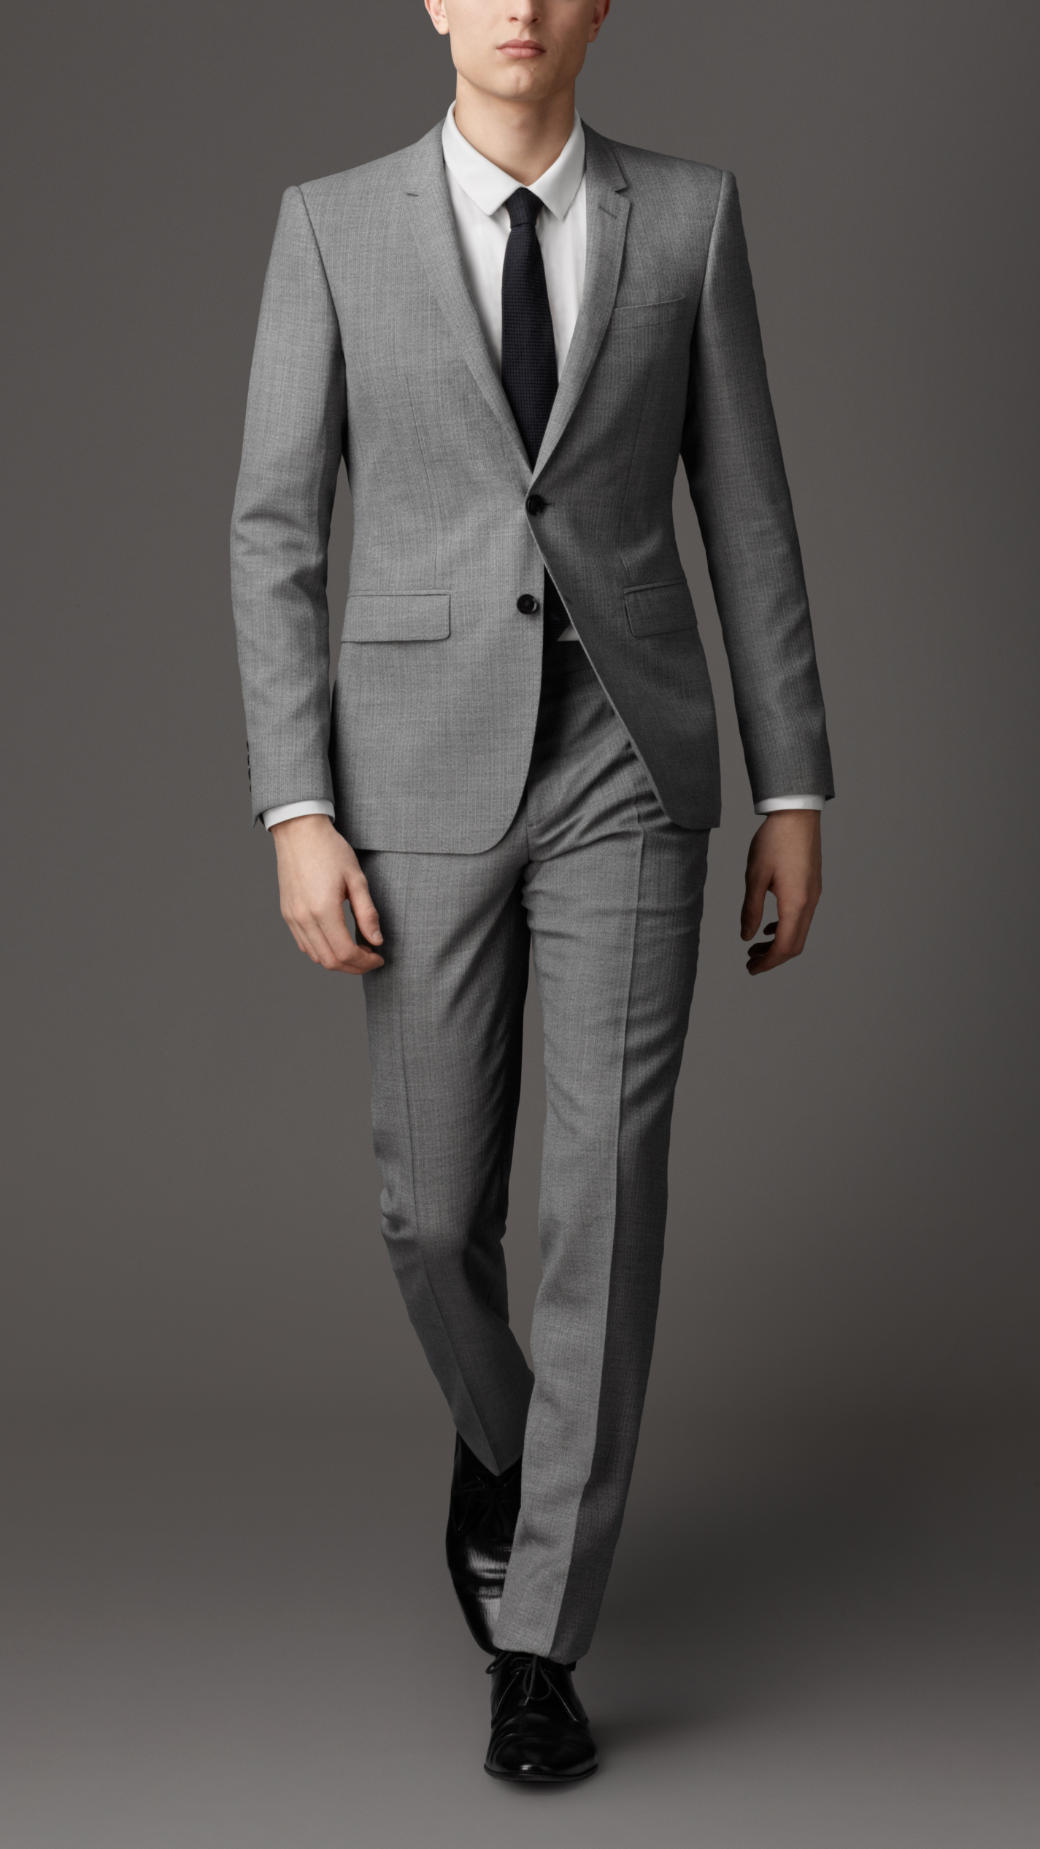 Men's Suits at Macy's come in all styles and sizes. Shop Men's Suits and get free shipping w/minimum purchase!